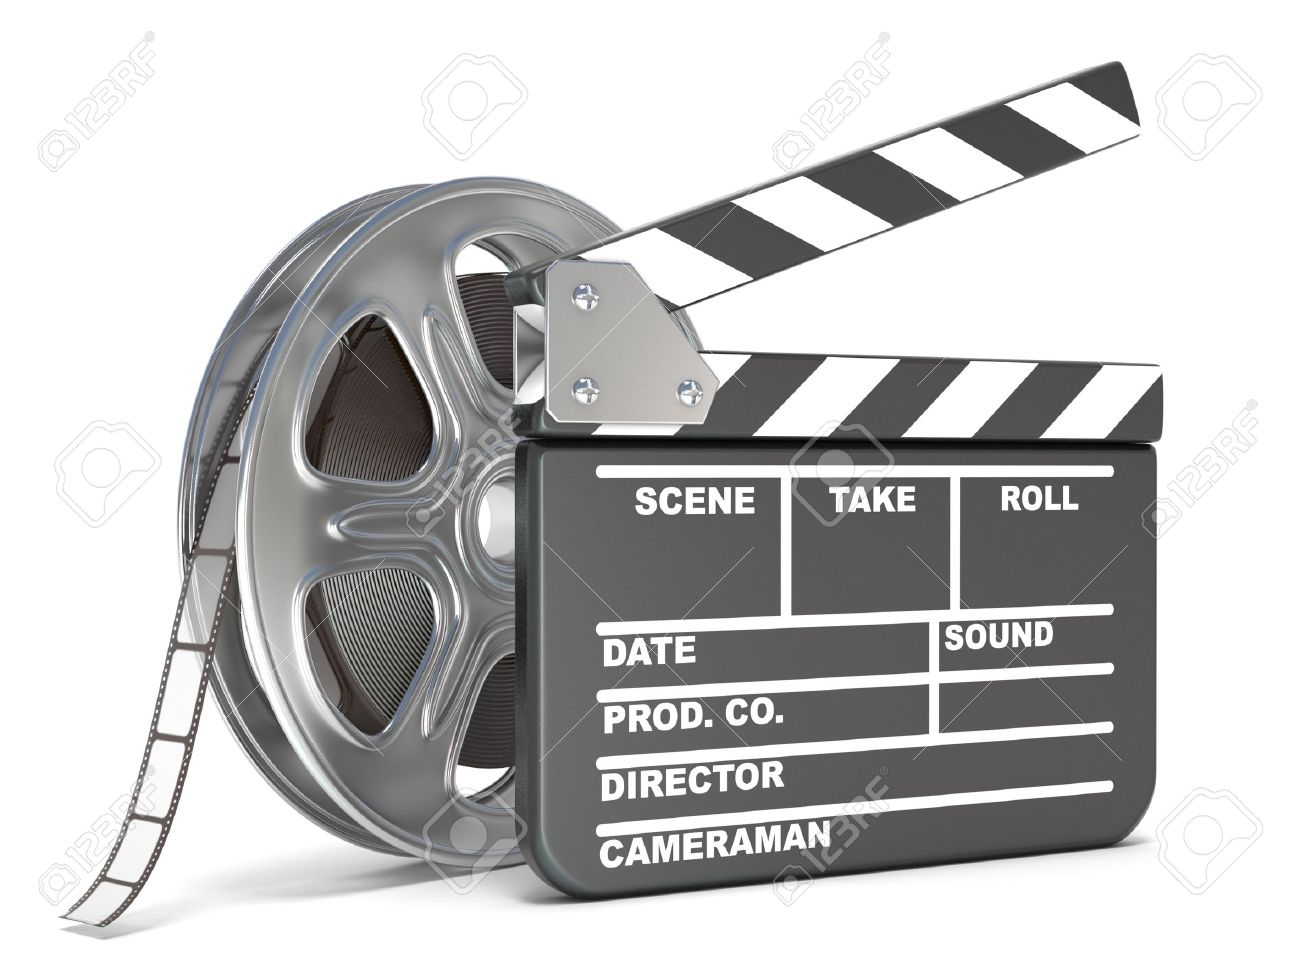 Clap Stock Photos Royalty Free Images Lighting Products Metal Related Searchesclapper Switch Light Film Reel And Movie Clapper Board Video Icon 3d Render Illustration Isolated On White